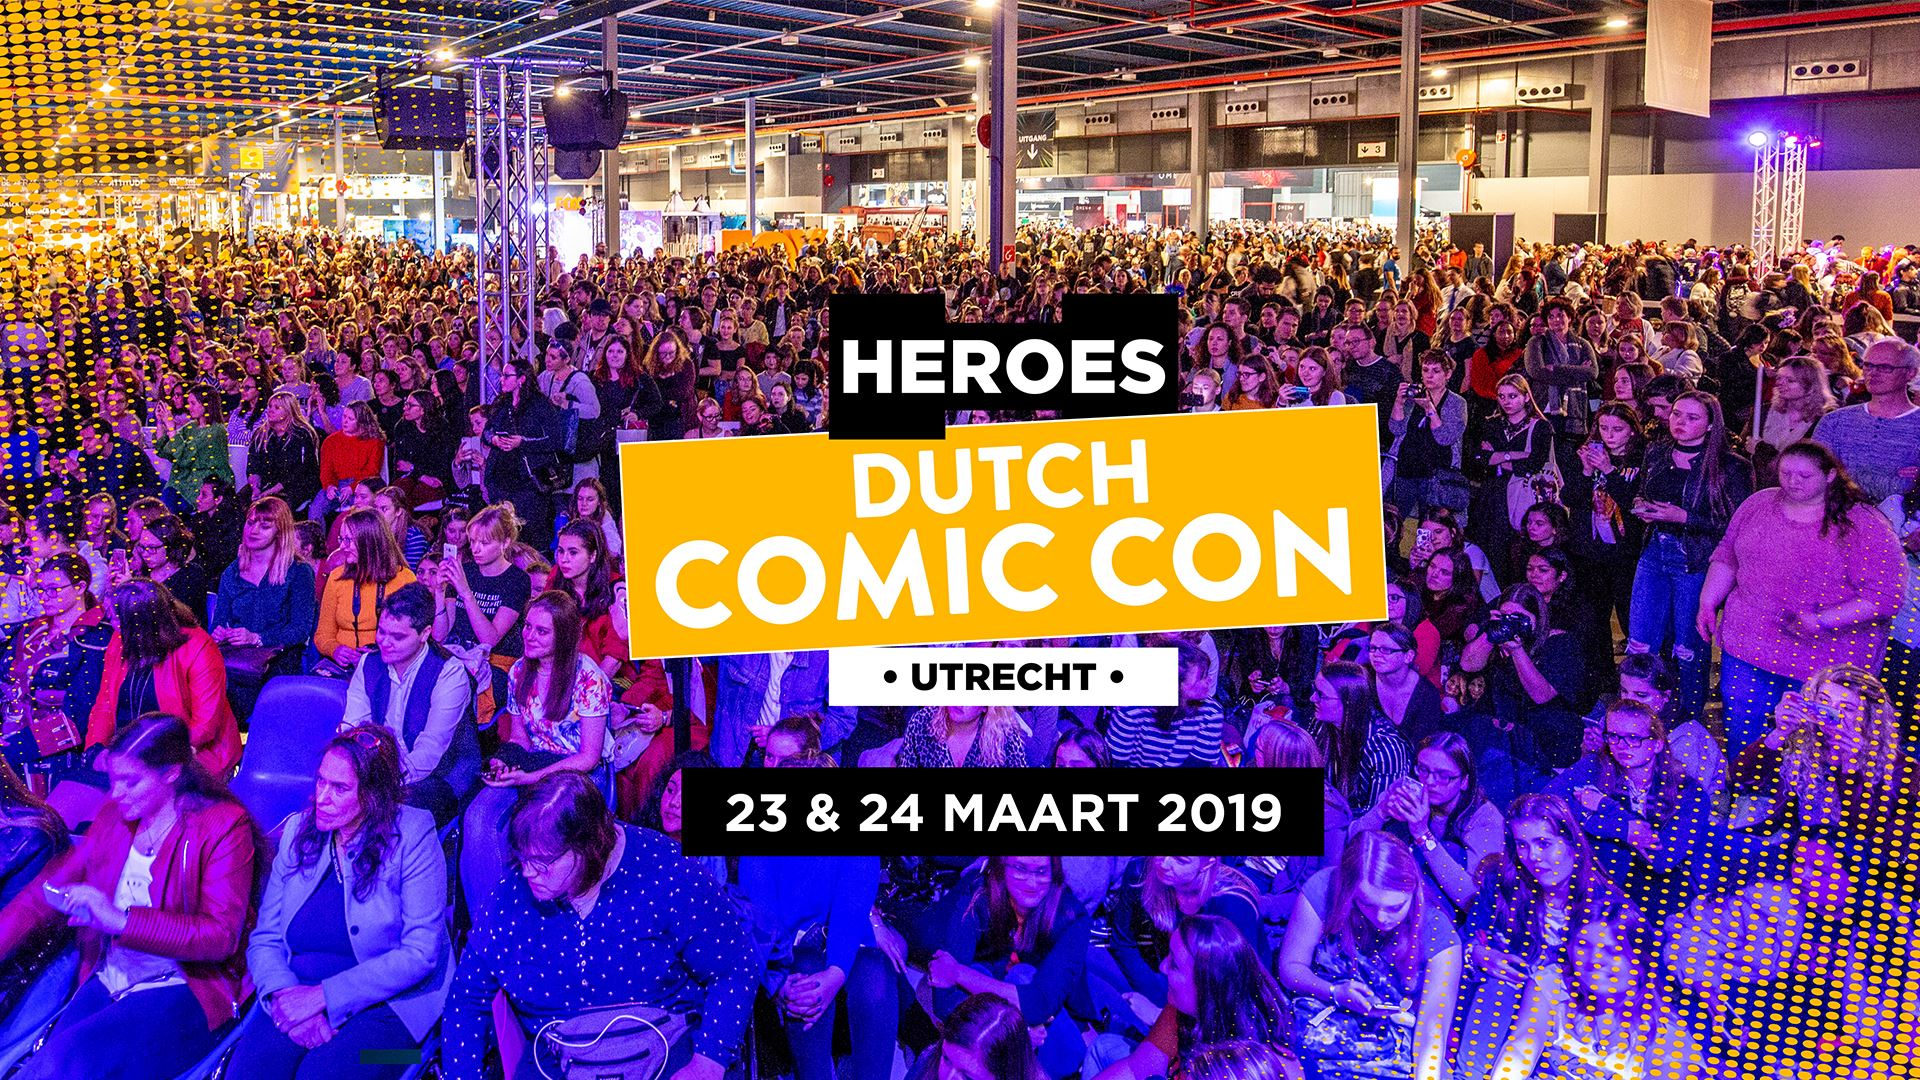 Heroes Dutch Comic Con 2019 voorjaarseditie